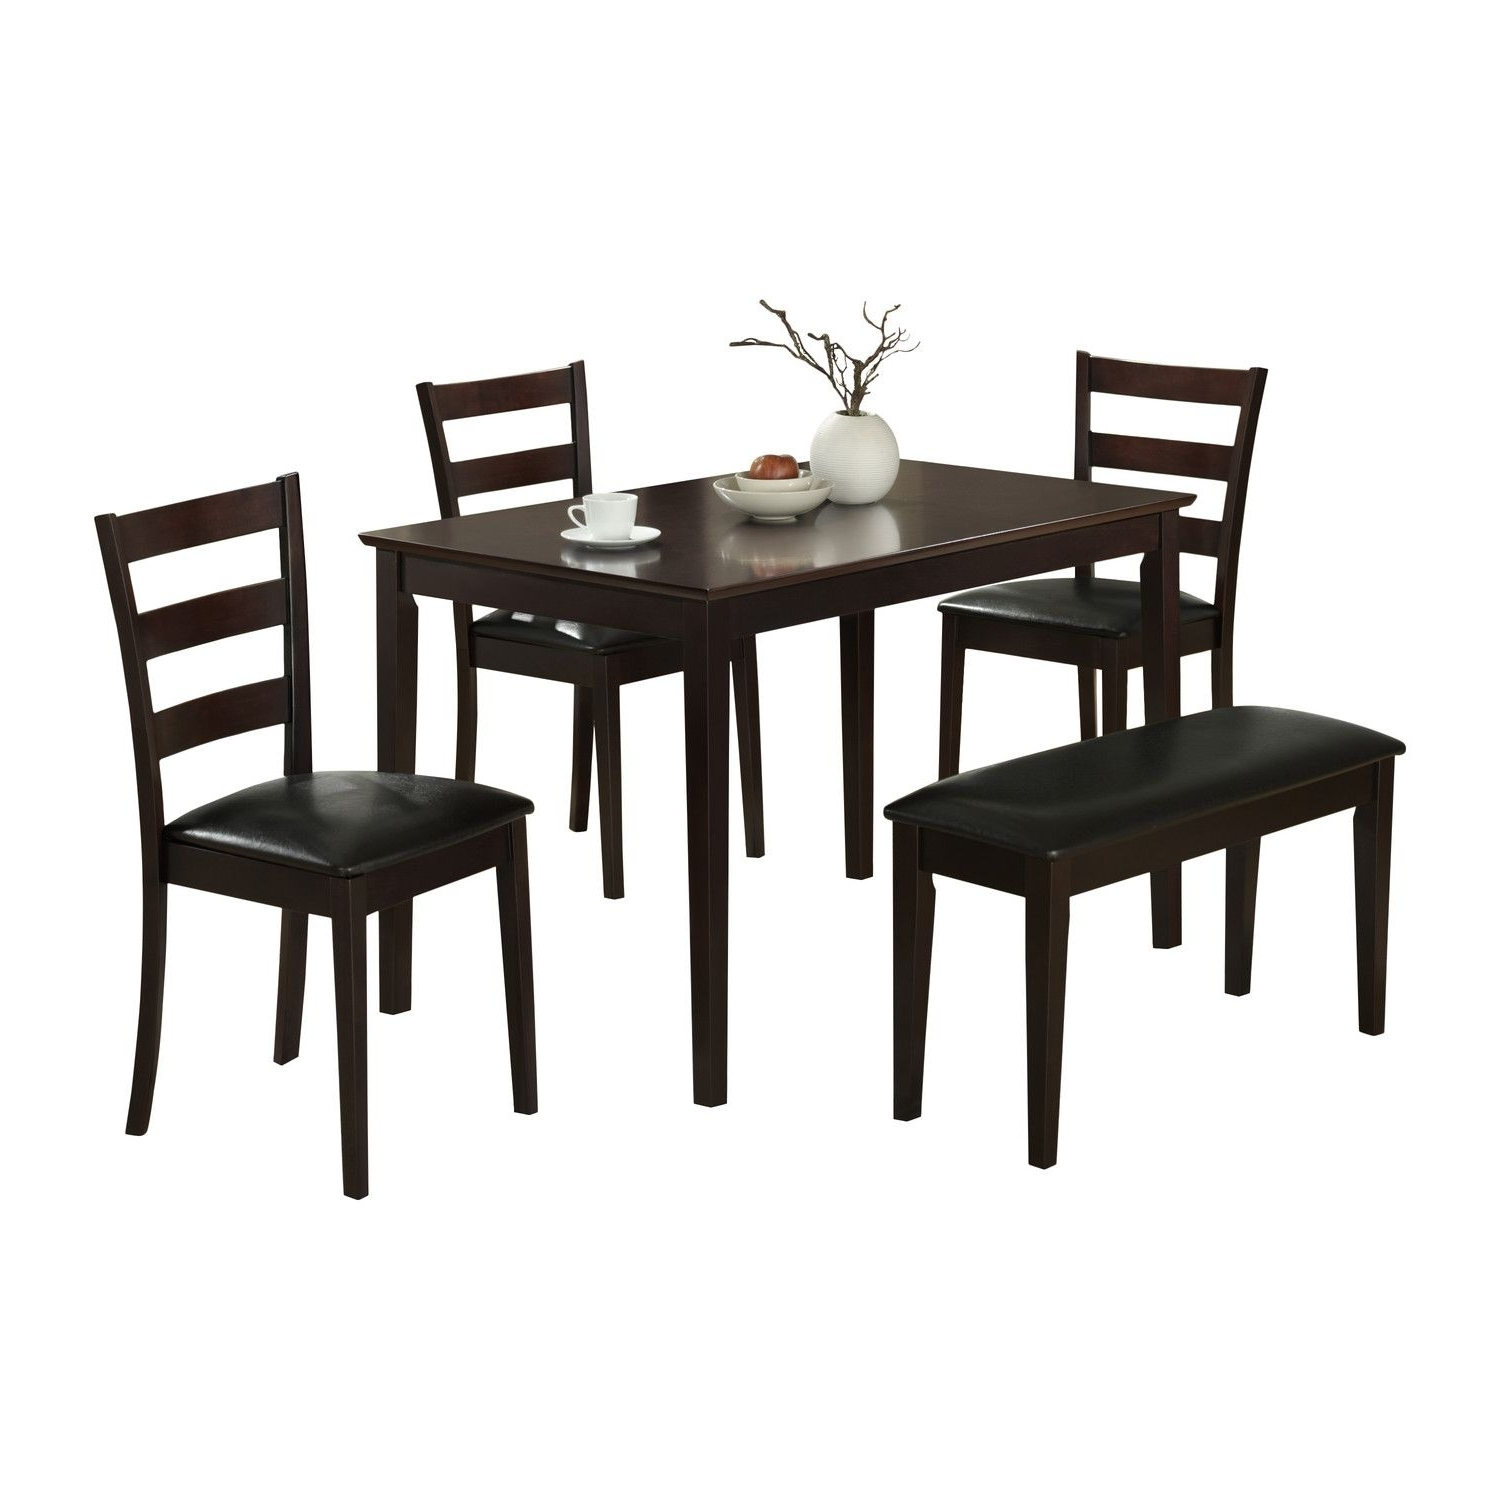 Kirsten 5 Piece Dining Sets For Most Current 5 Piece Dining Set (Gallery 6 of 25)